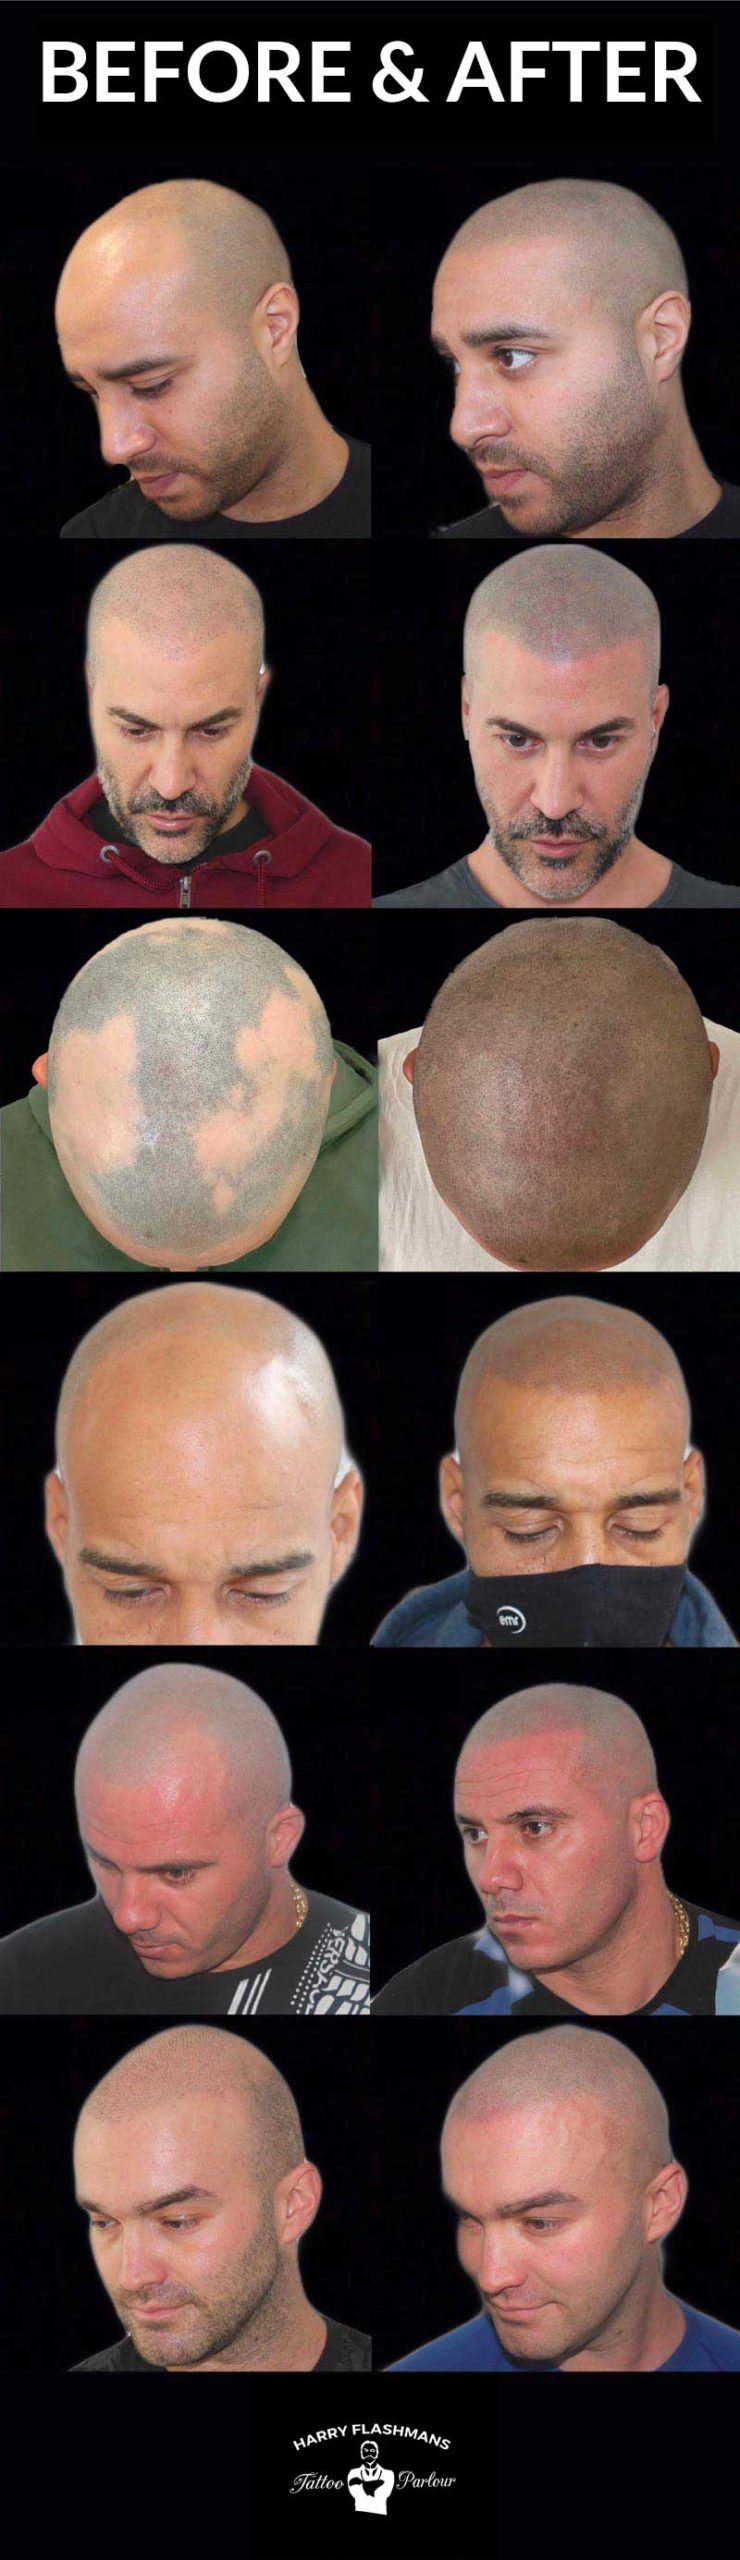 scalp-micropigmentation-smp-before-after